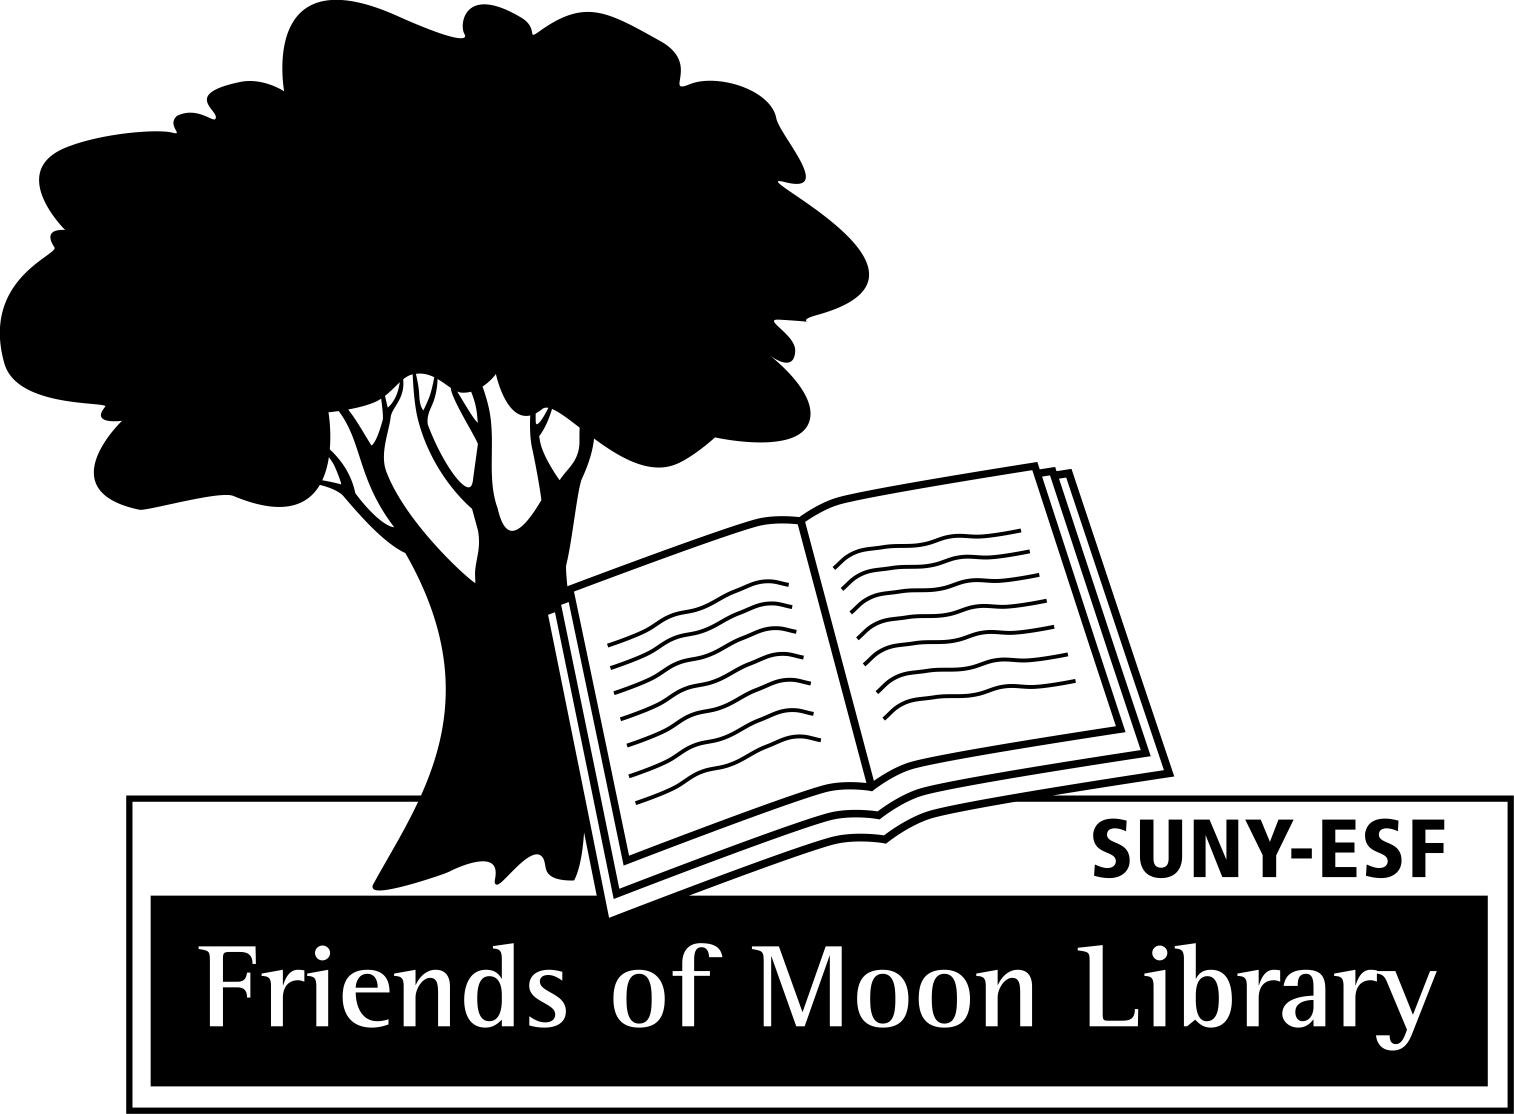 Image of Friends of Moon Library logo